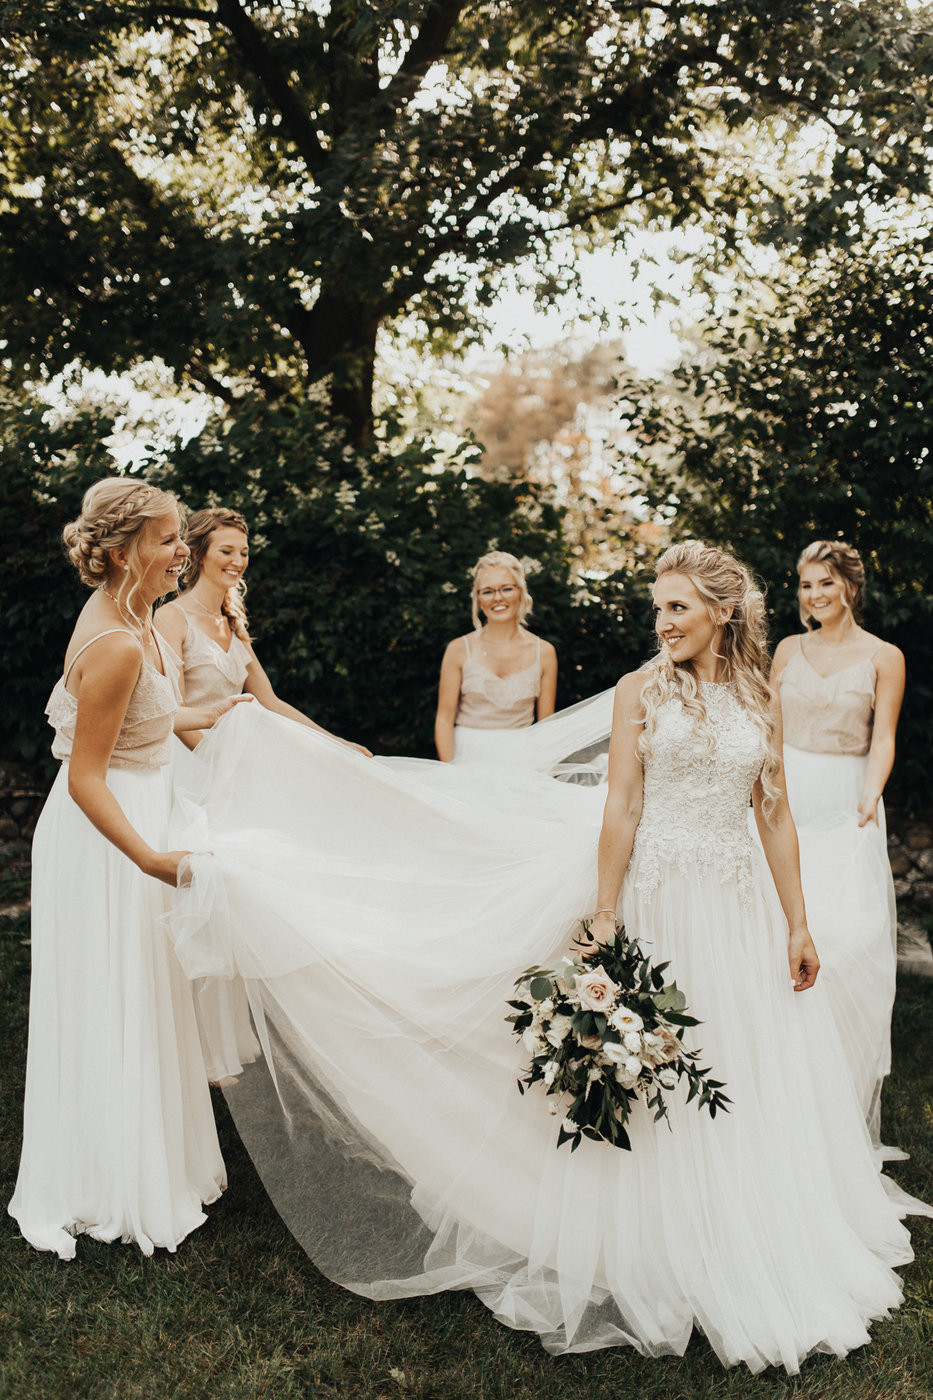 Neutral summer wedding at the Craigowan Golf Course in Woodstock, Ontario. Photo by Paper Suitcase Photography.